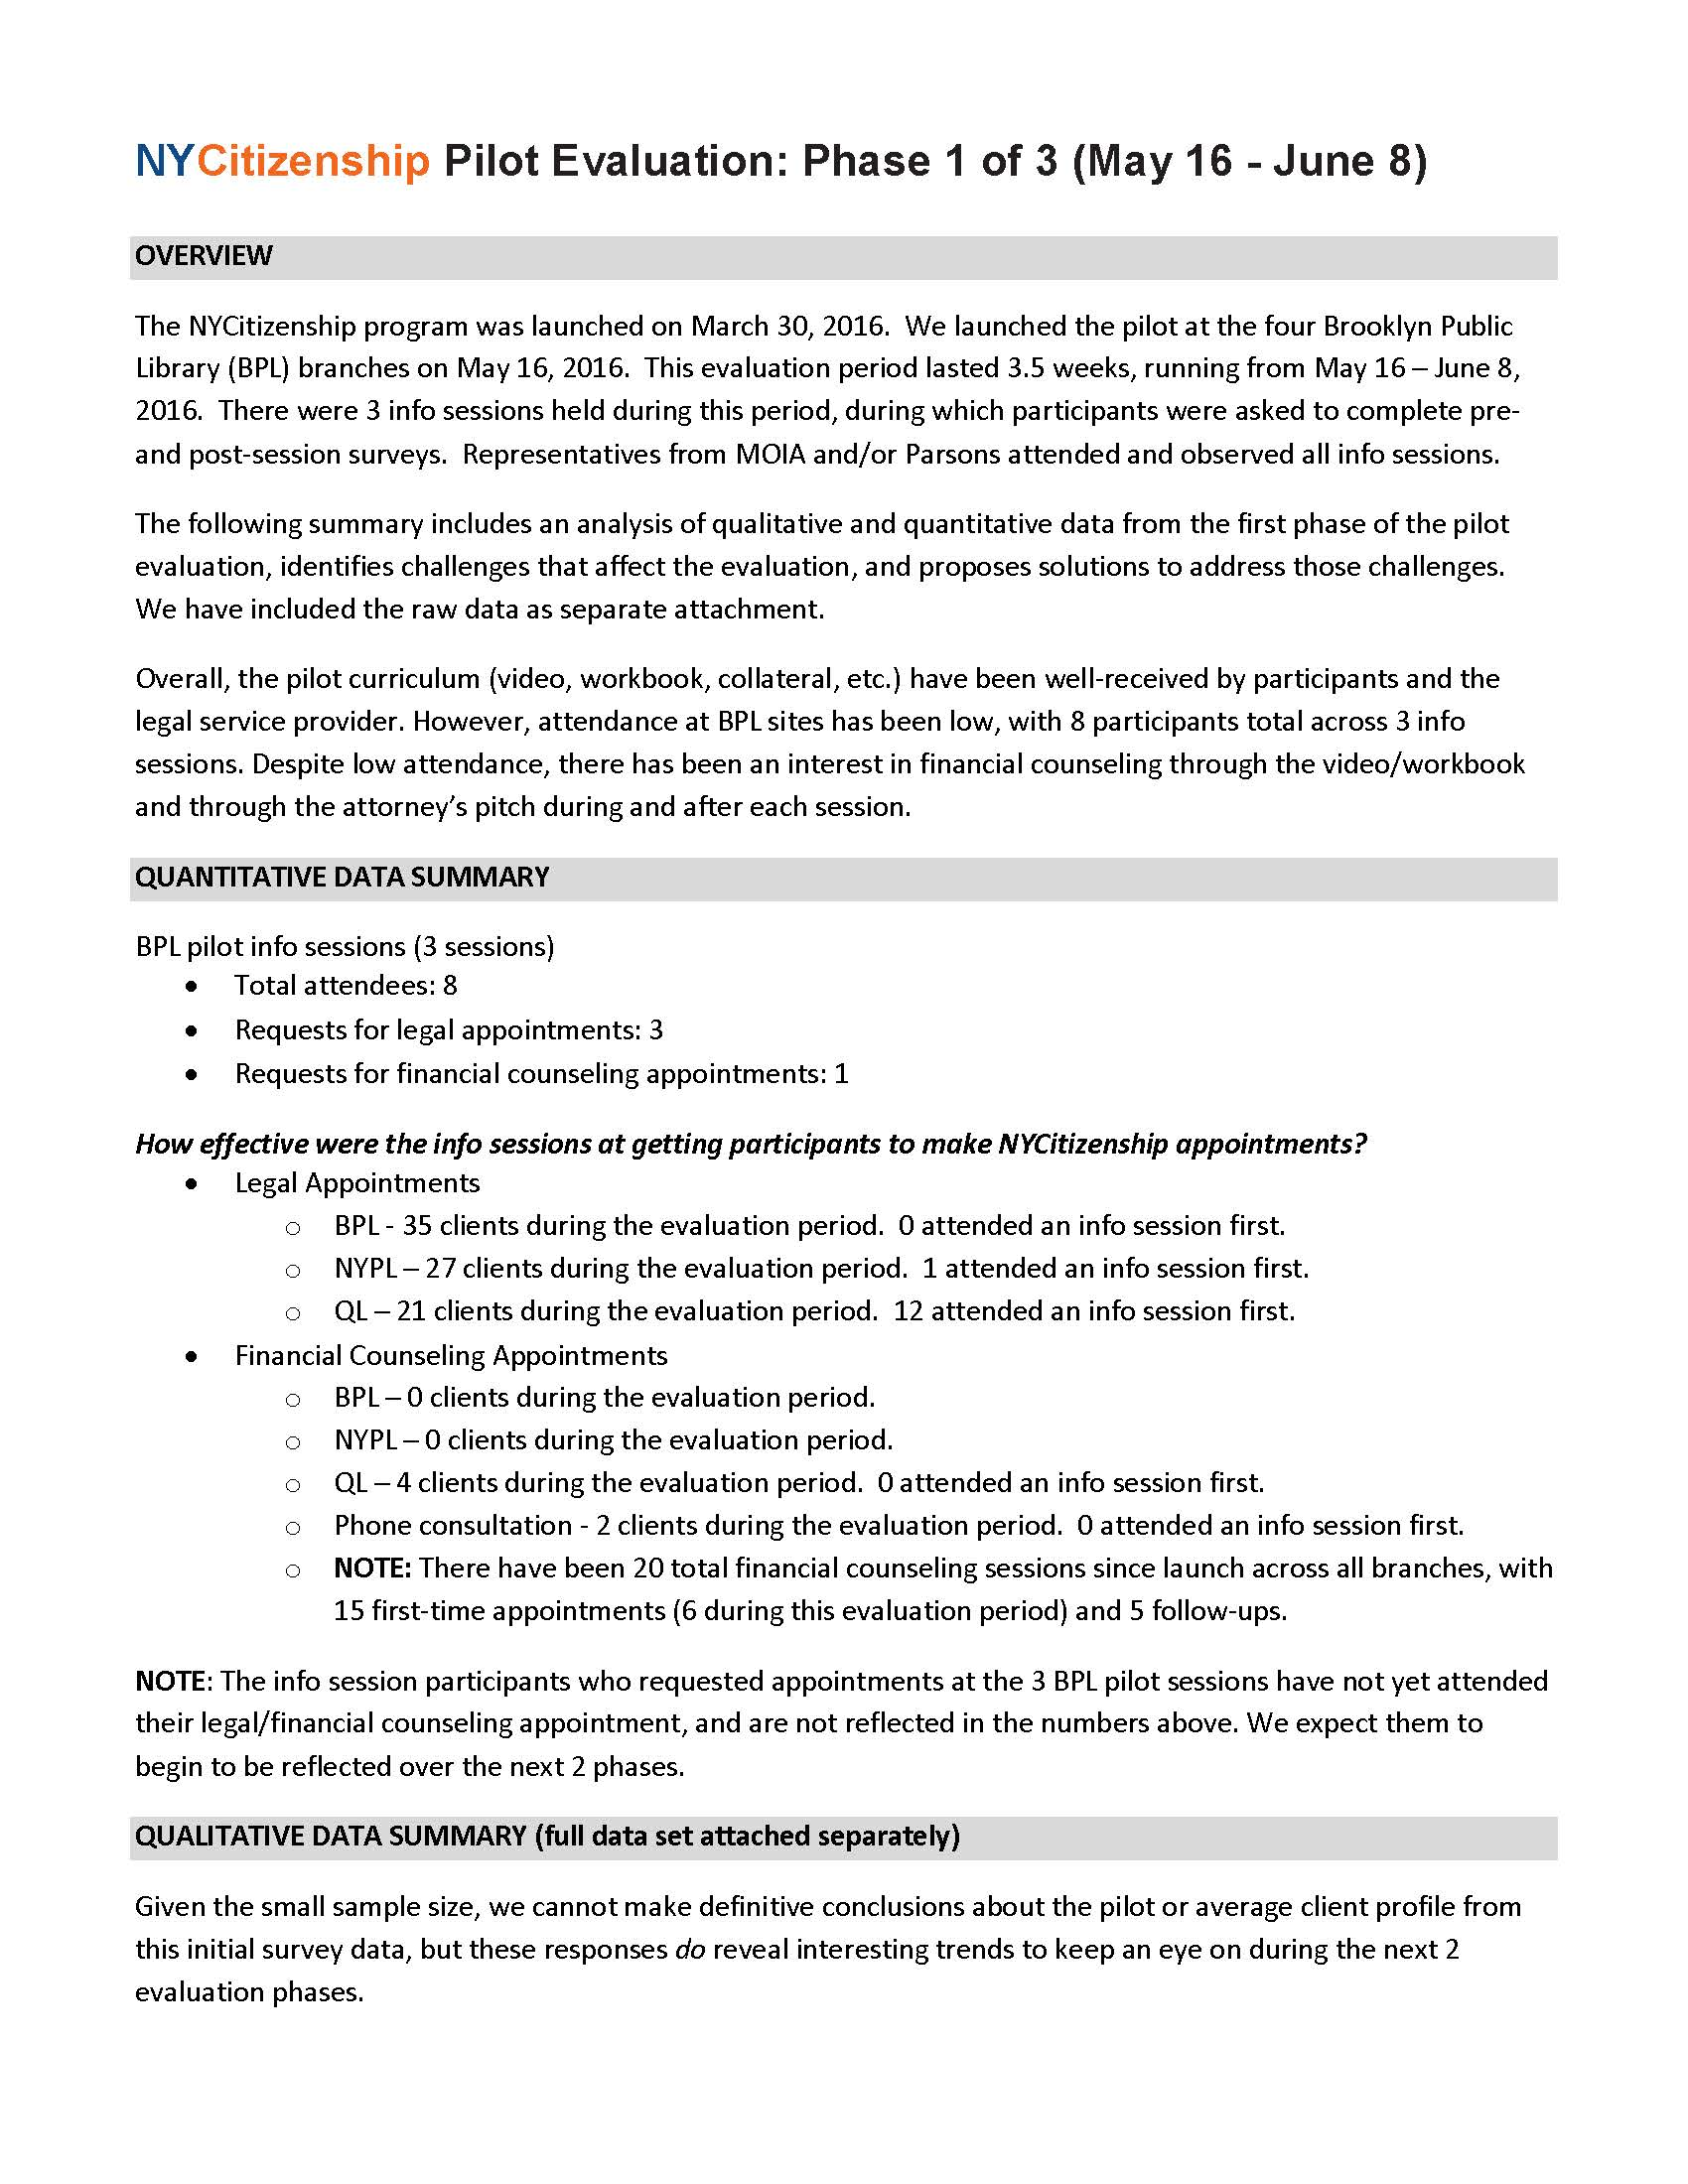 NYCitizenship Parsons Pilot Evaluation - Phase 1_Page_1.jpg